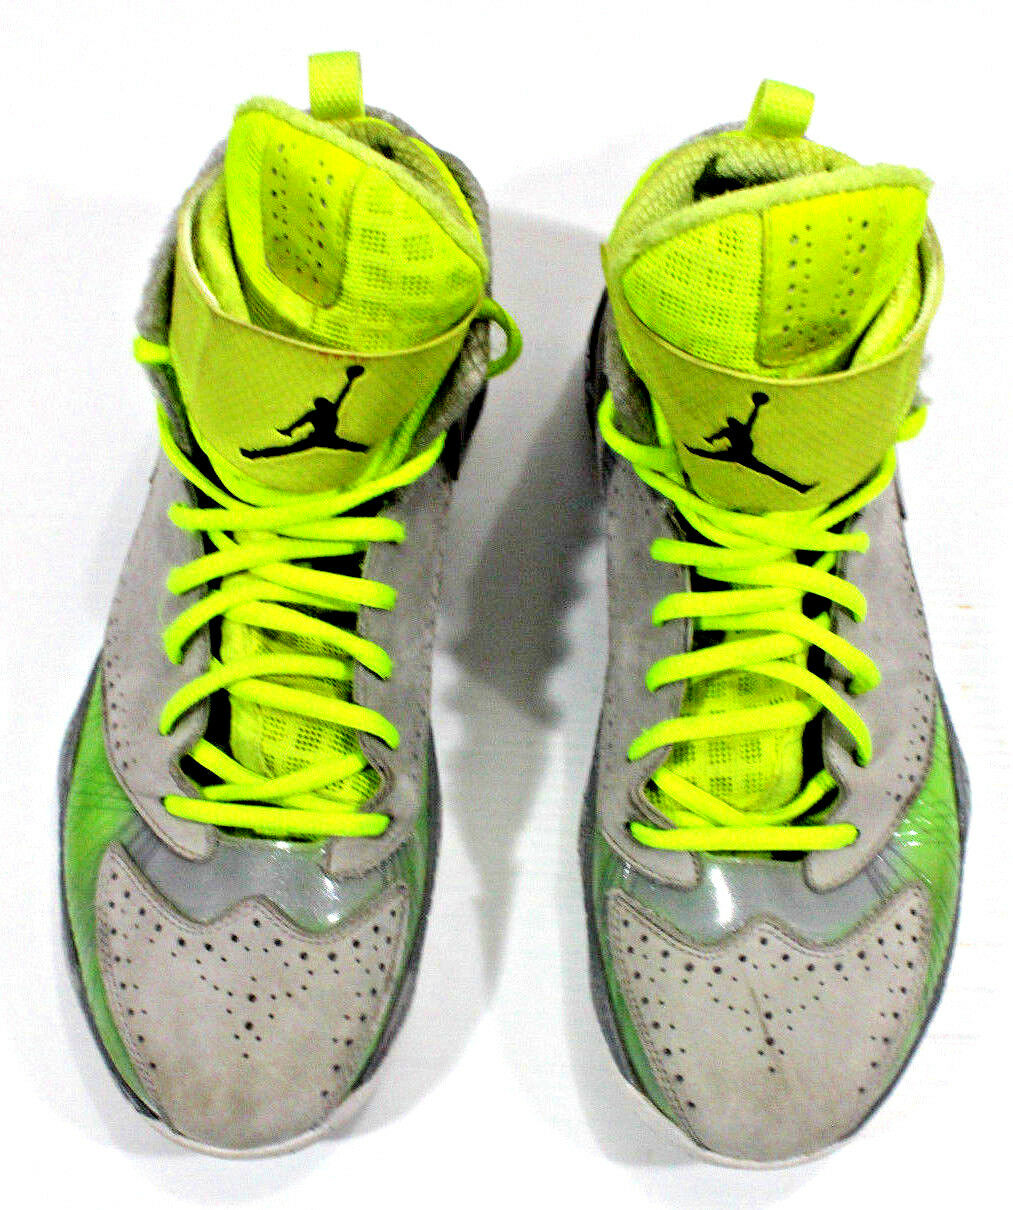 Nike Air Jordan Mens High Basketball Shoes Size 2012 Leather Gray 484654-001 Size Shoes 12 95f173